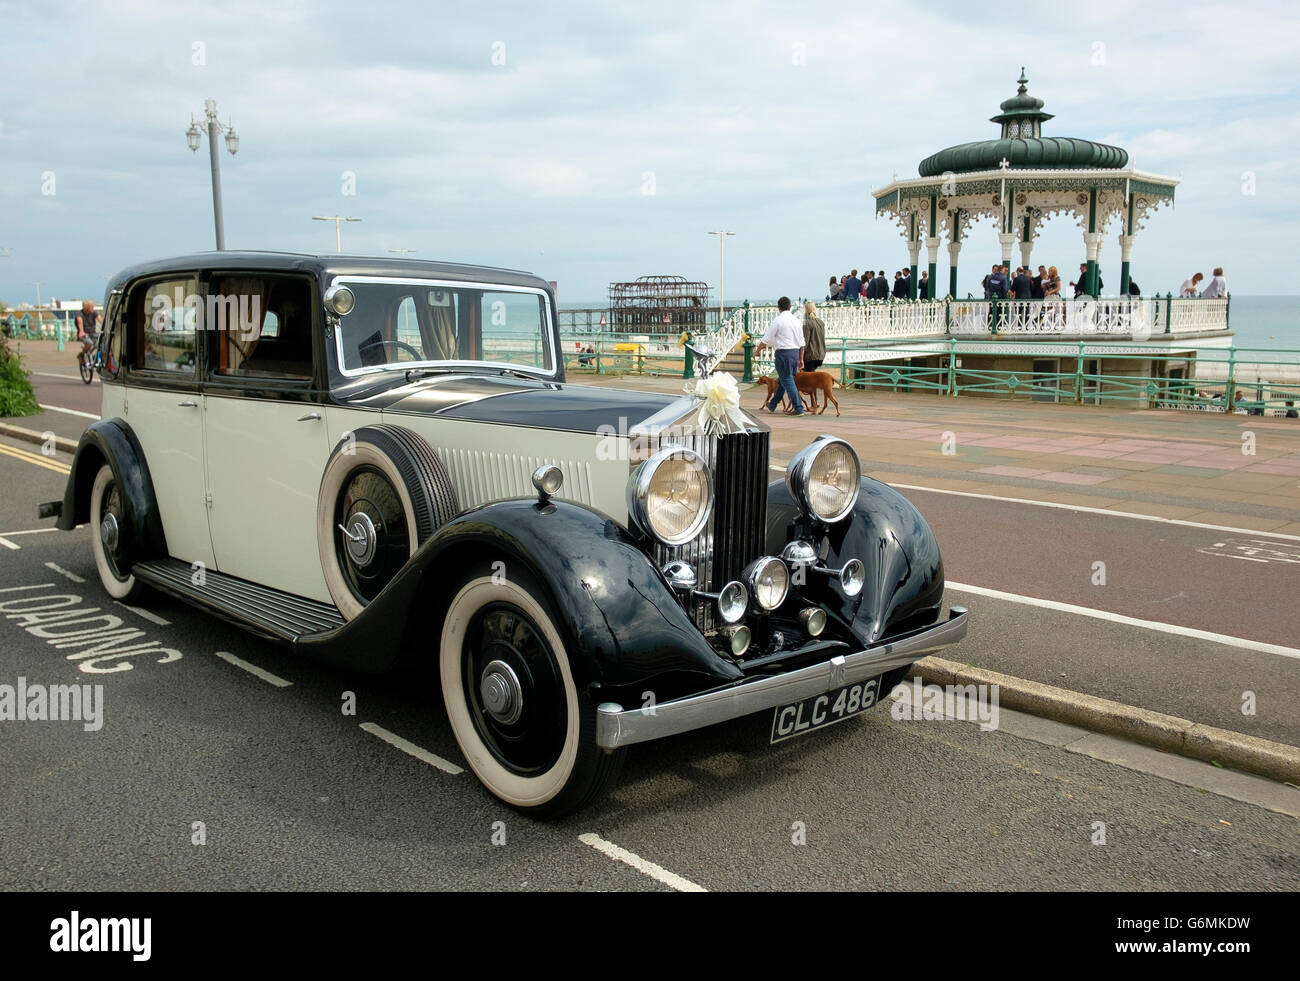 A vintage Rolls Royce parked on Brighton & Hove's seafront for a wedding party in the Hove Bandstand. - Stock Image